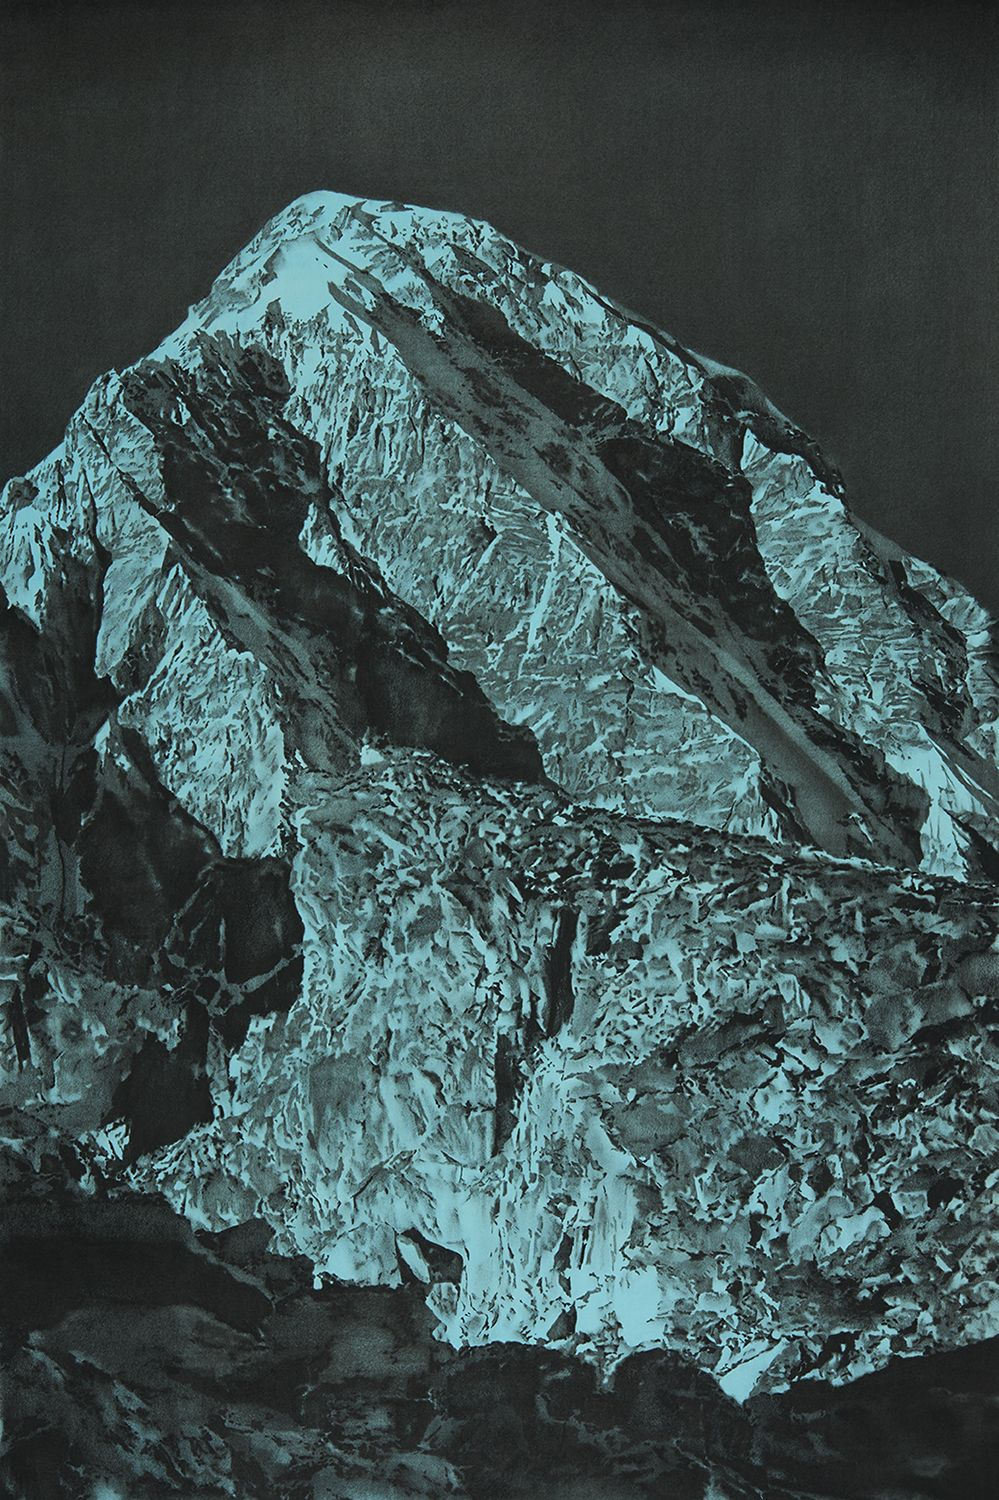 A highly-detailed drawing of Mt. Everest in black on an electric blue background.